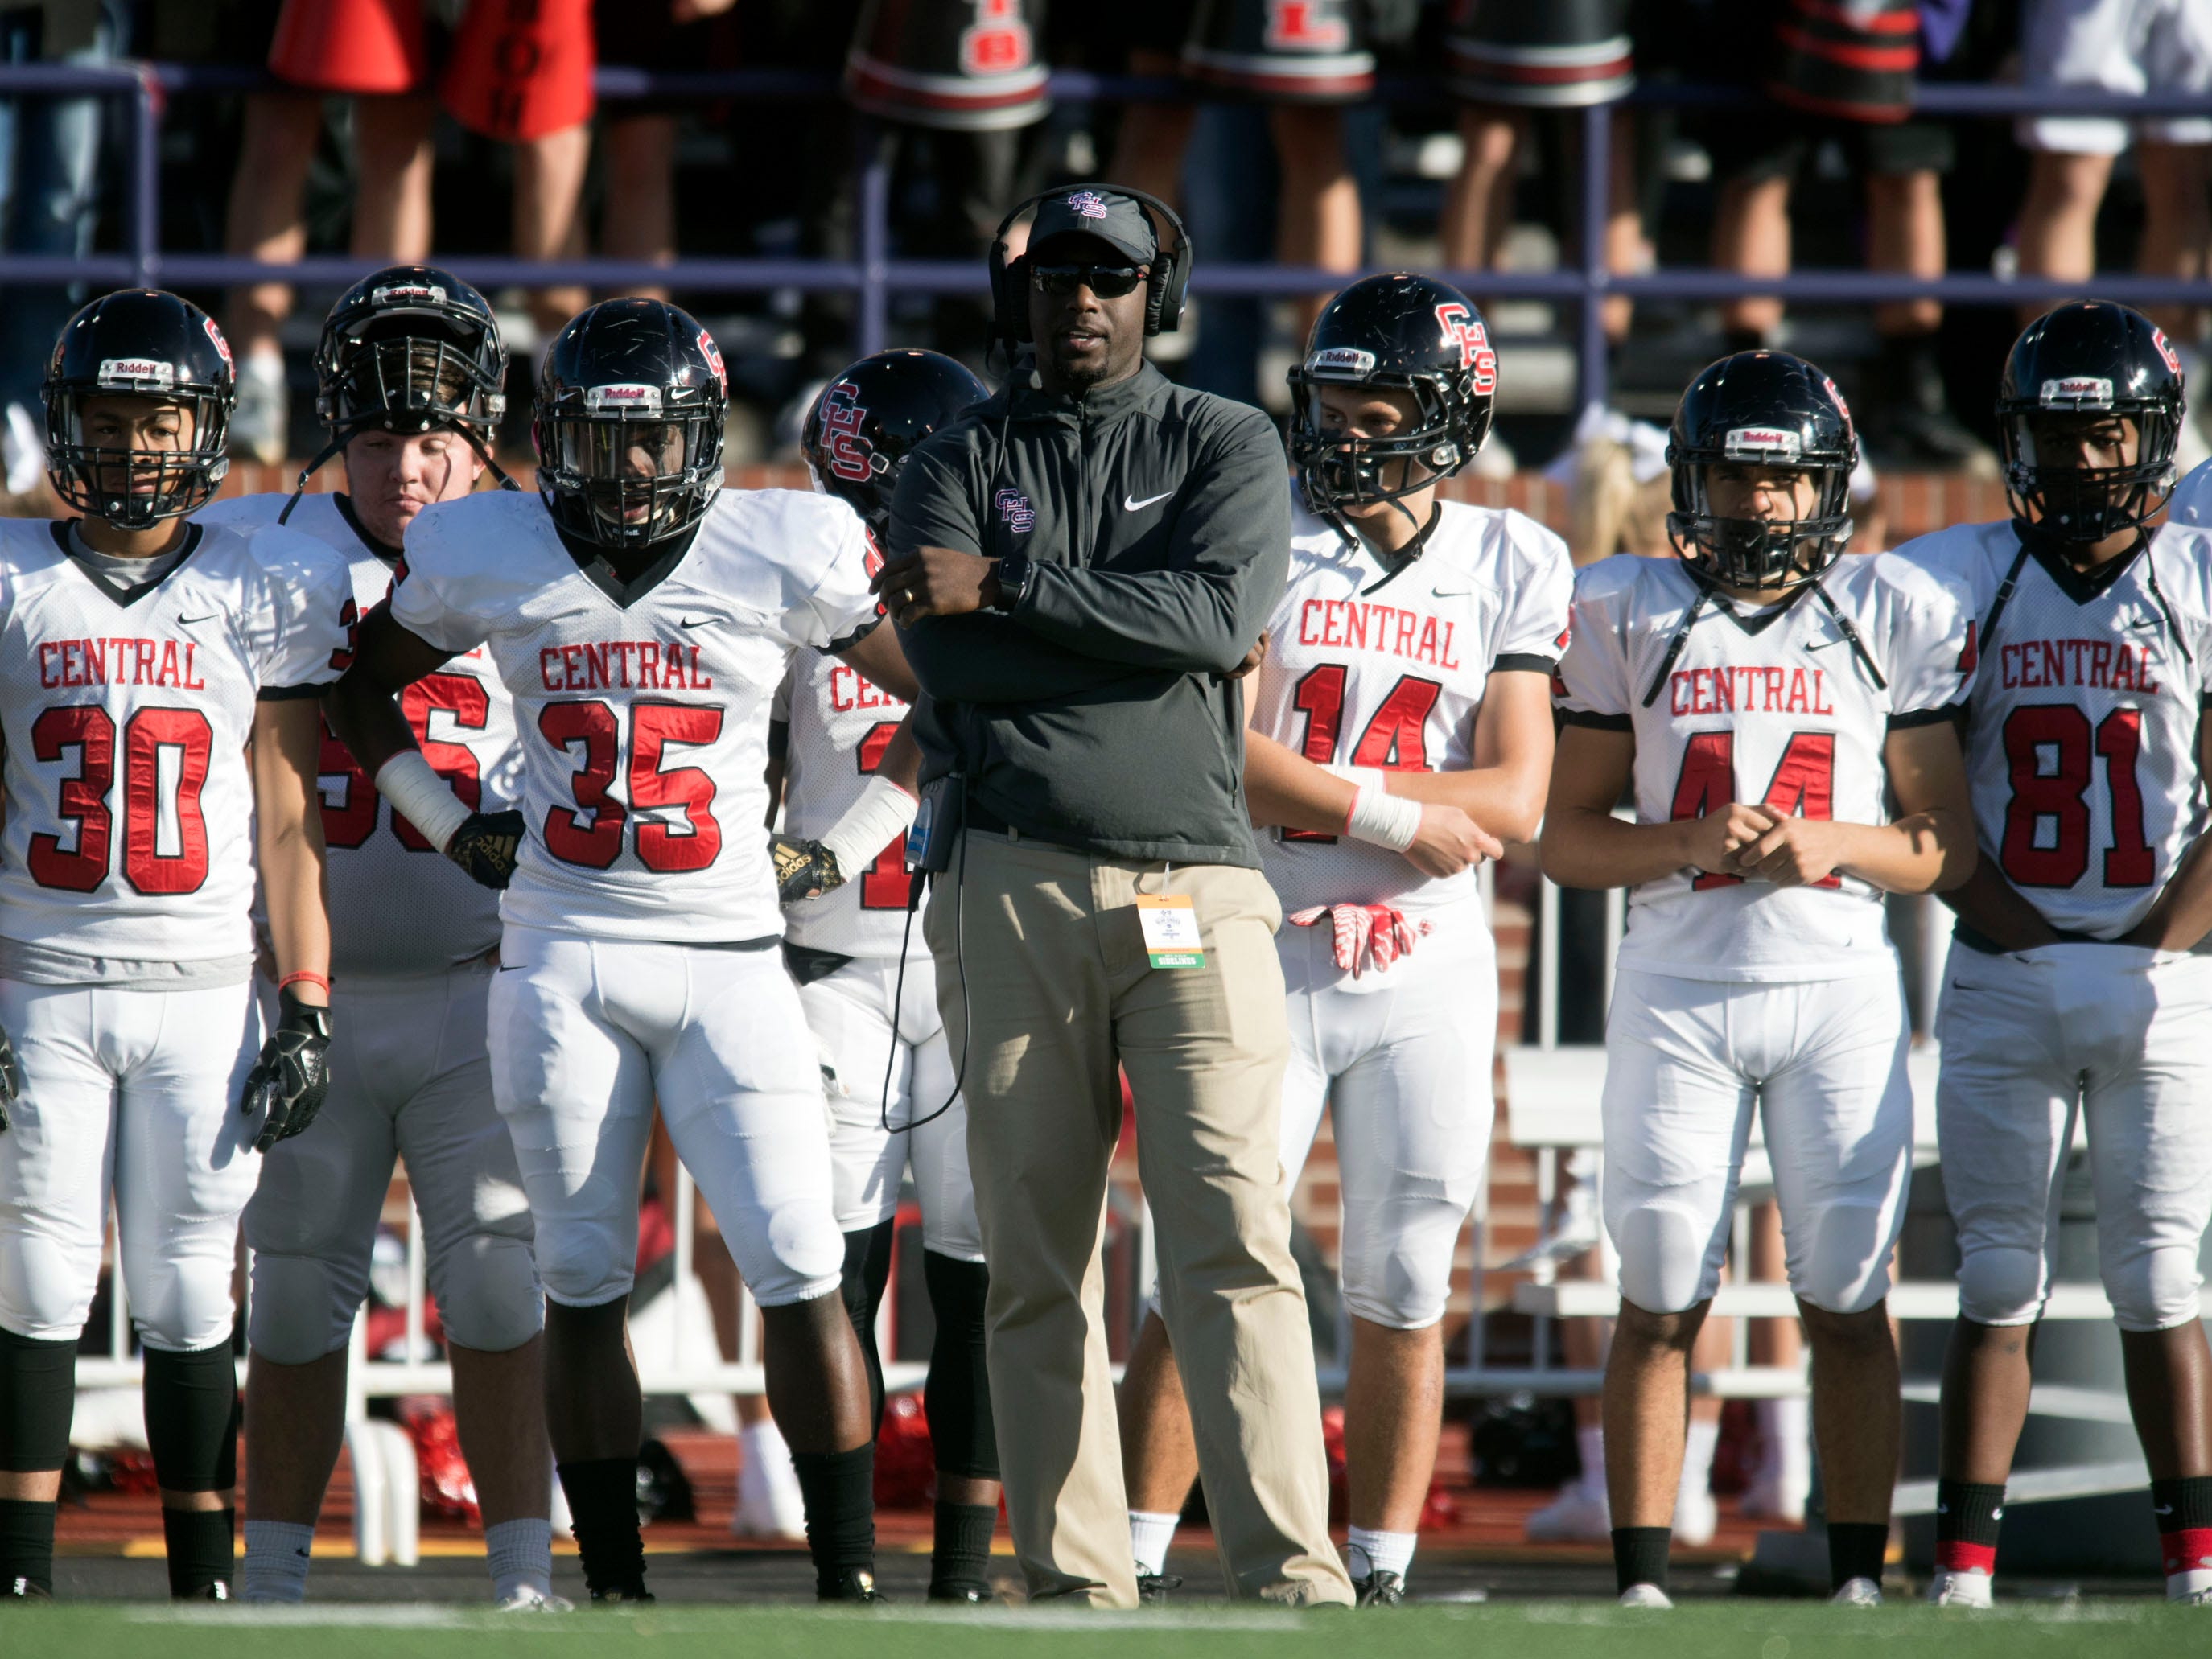 Central head coach Bryson Rosser on the sidelined during the game against Henry County in the Class 5A BlueCross Bowl at Tucker Stadium on Sunday, December 2, 2018.